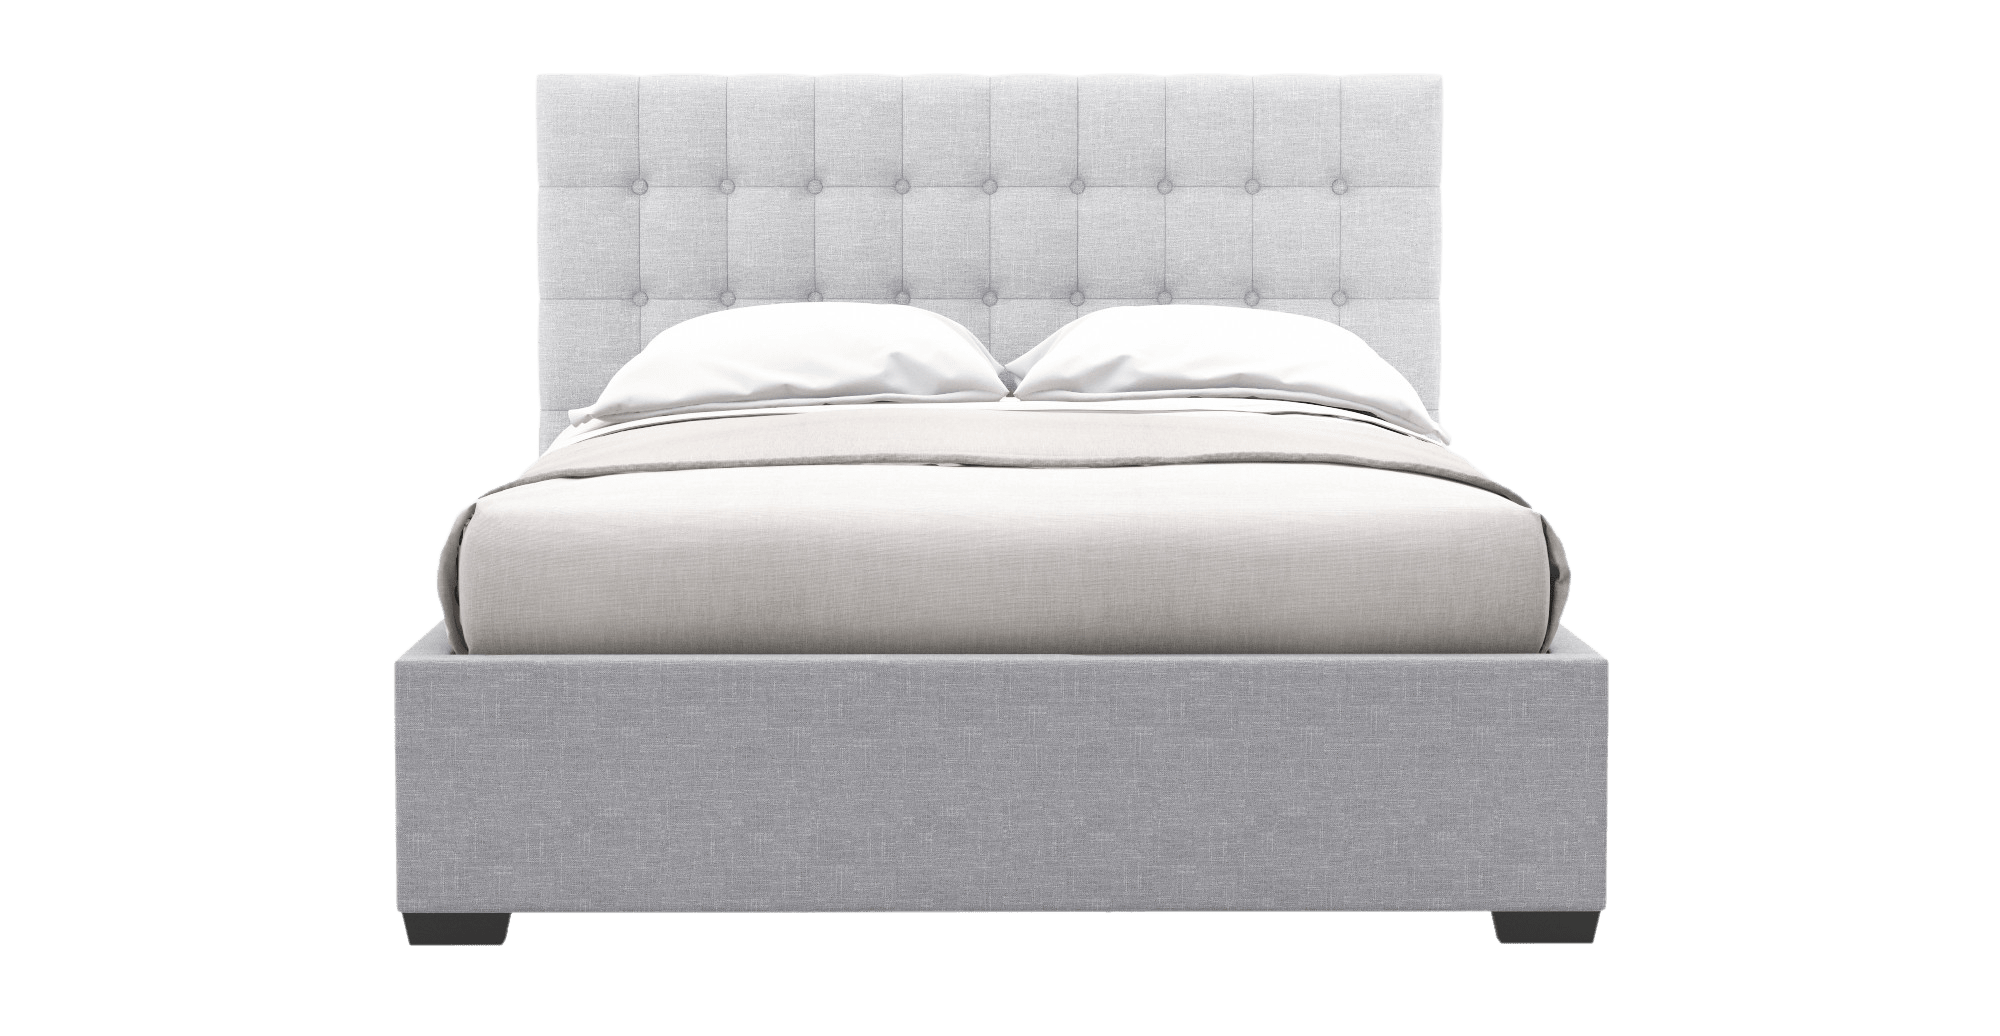 Buy Leia Gas Lift Queen Size Bed Frame Online in Australia | BROSA